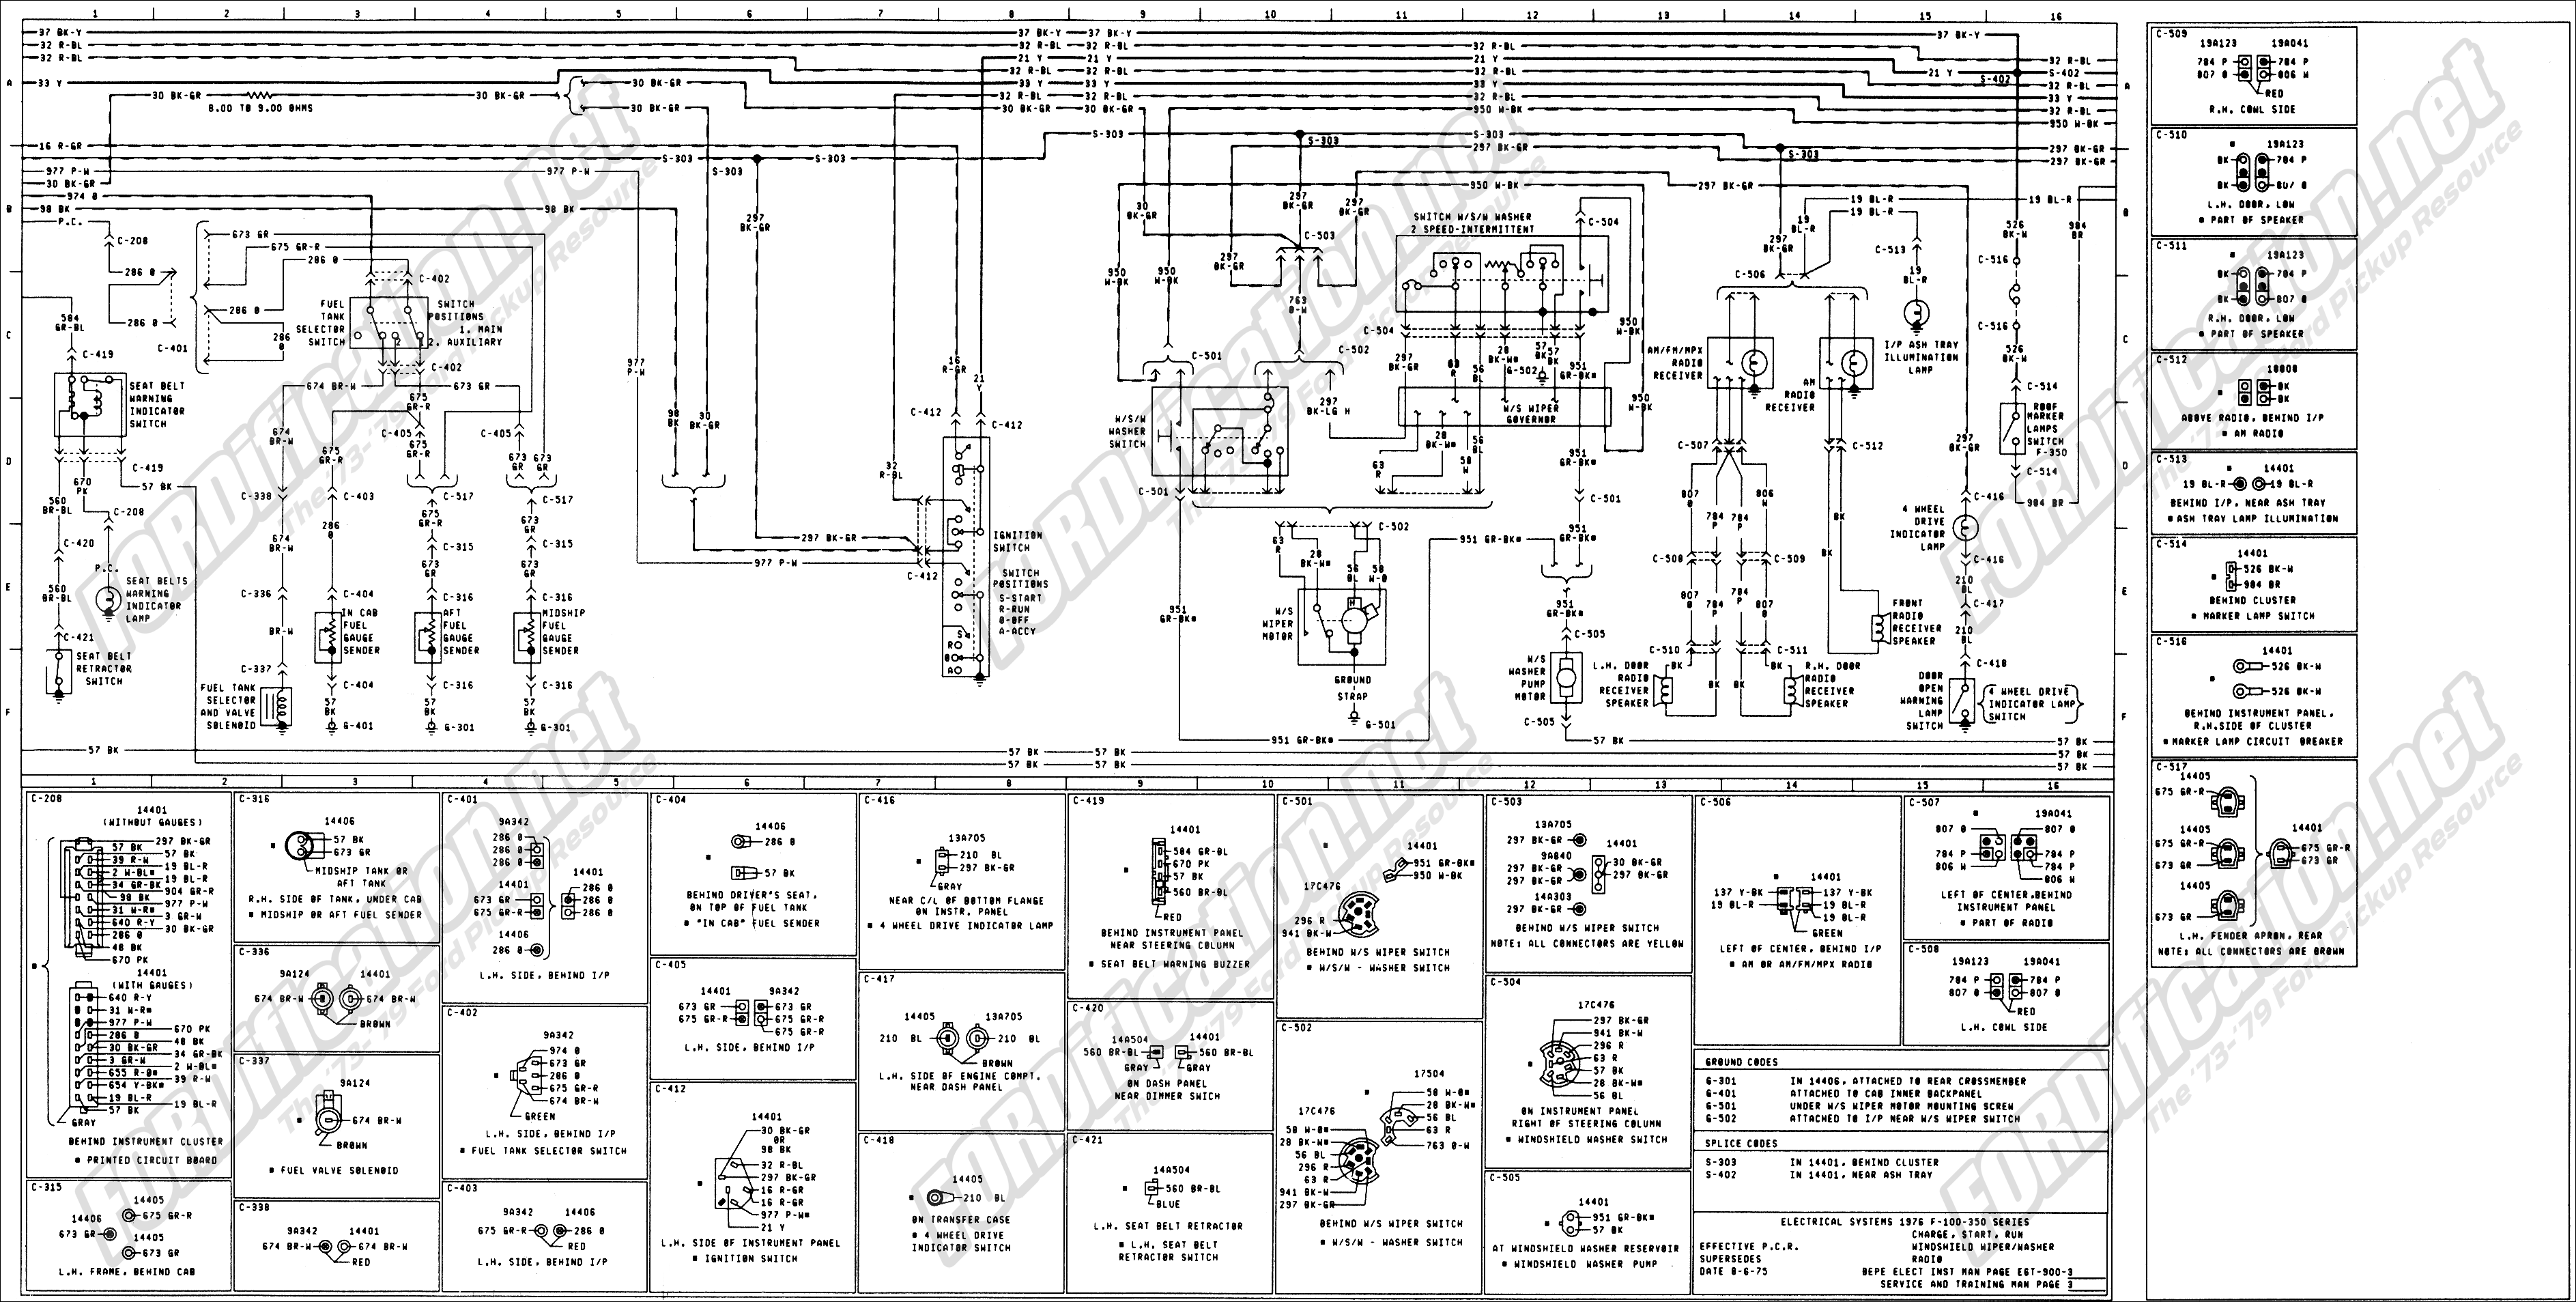 wiring_76master_3of9 1973 1979 ford truck wiring diagrams & schematics fordification net 2011 ford focus wiring diagram at webbmarketing.co